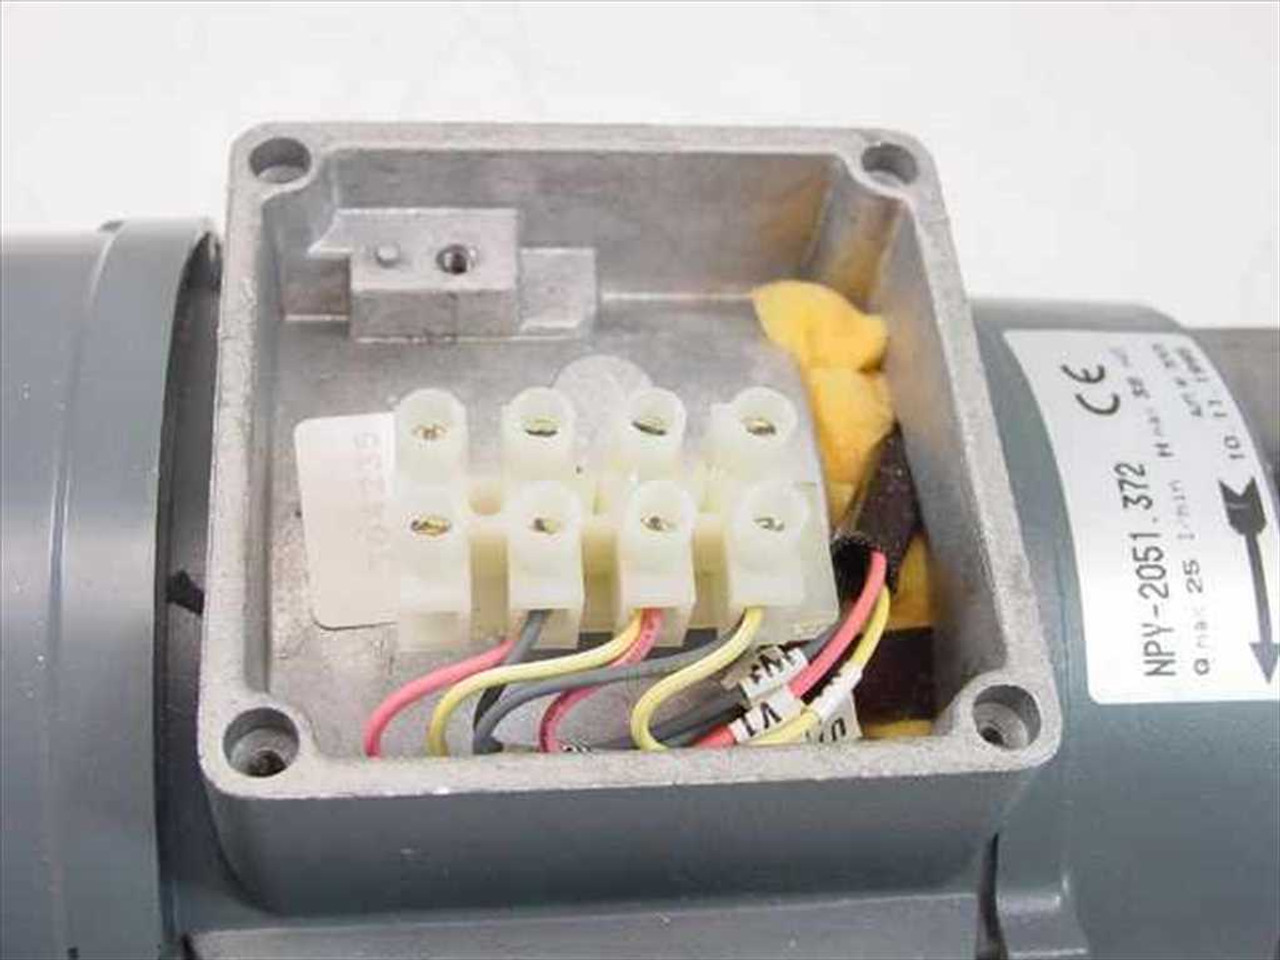 medium resolution of  atb af63 2b 7 motor runs well pump is for parts needs